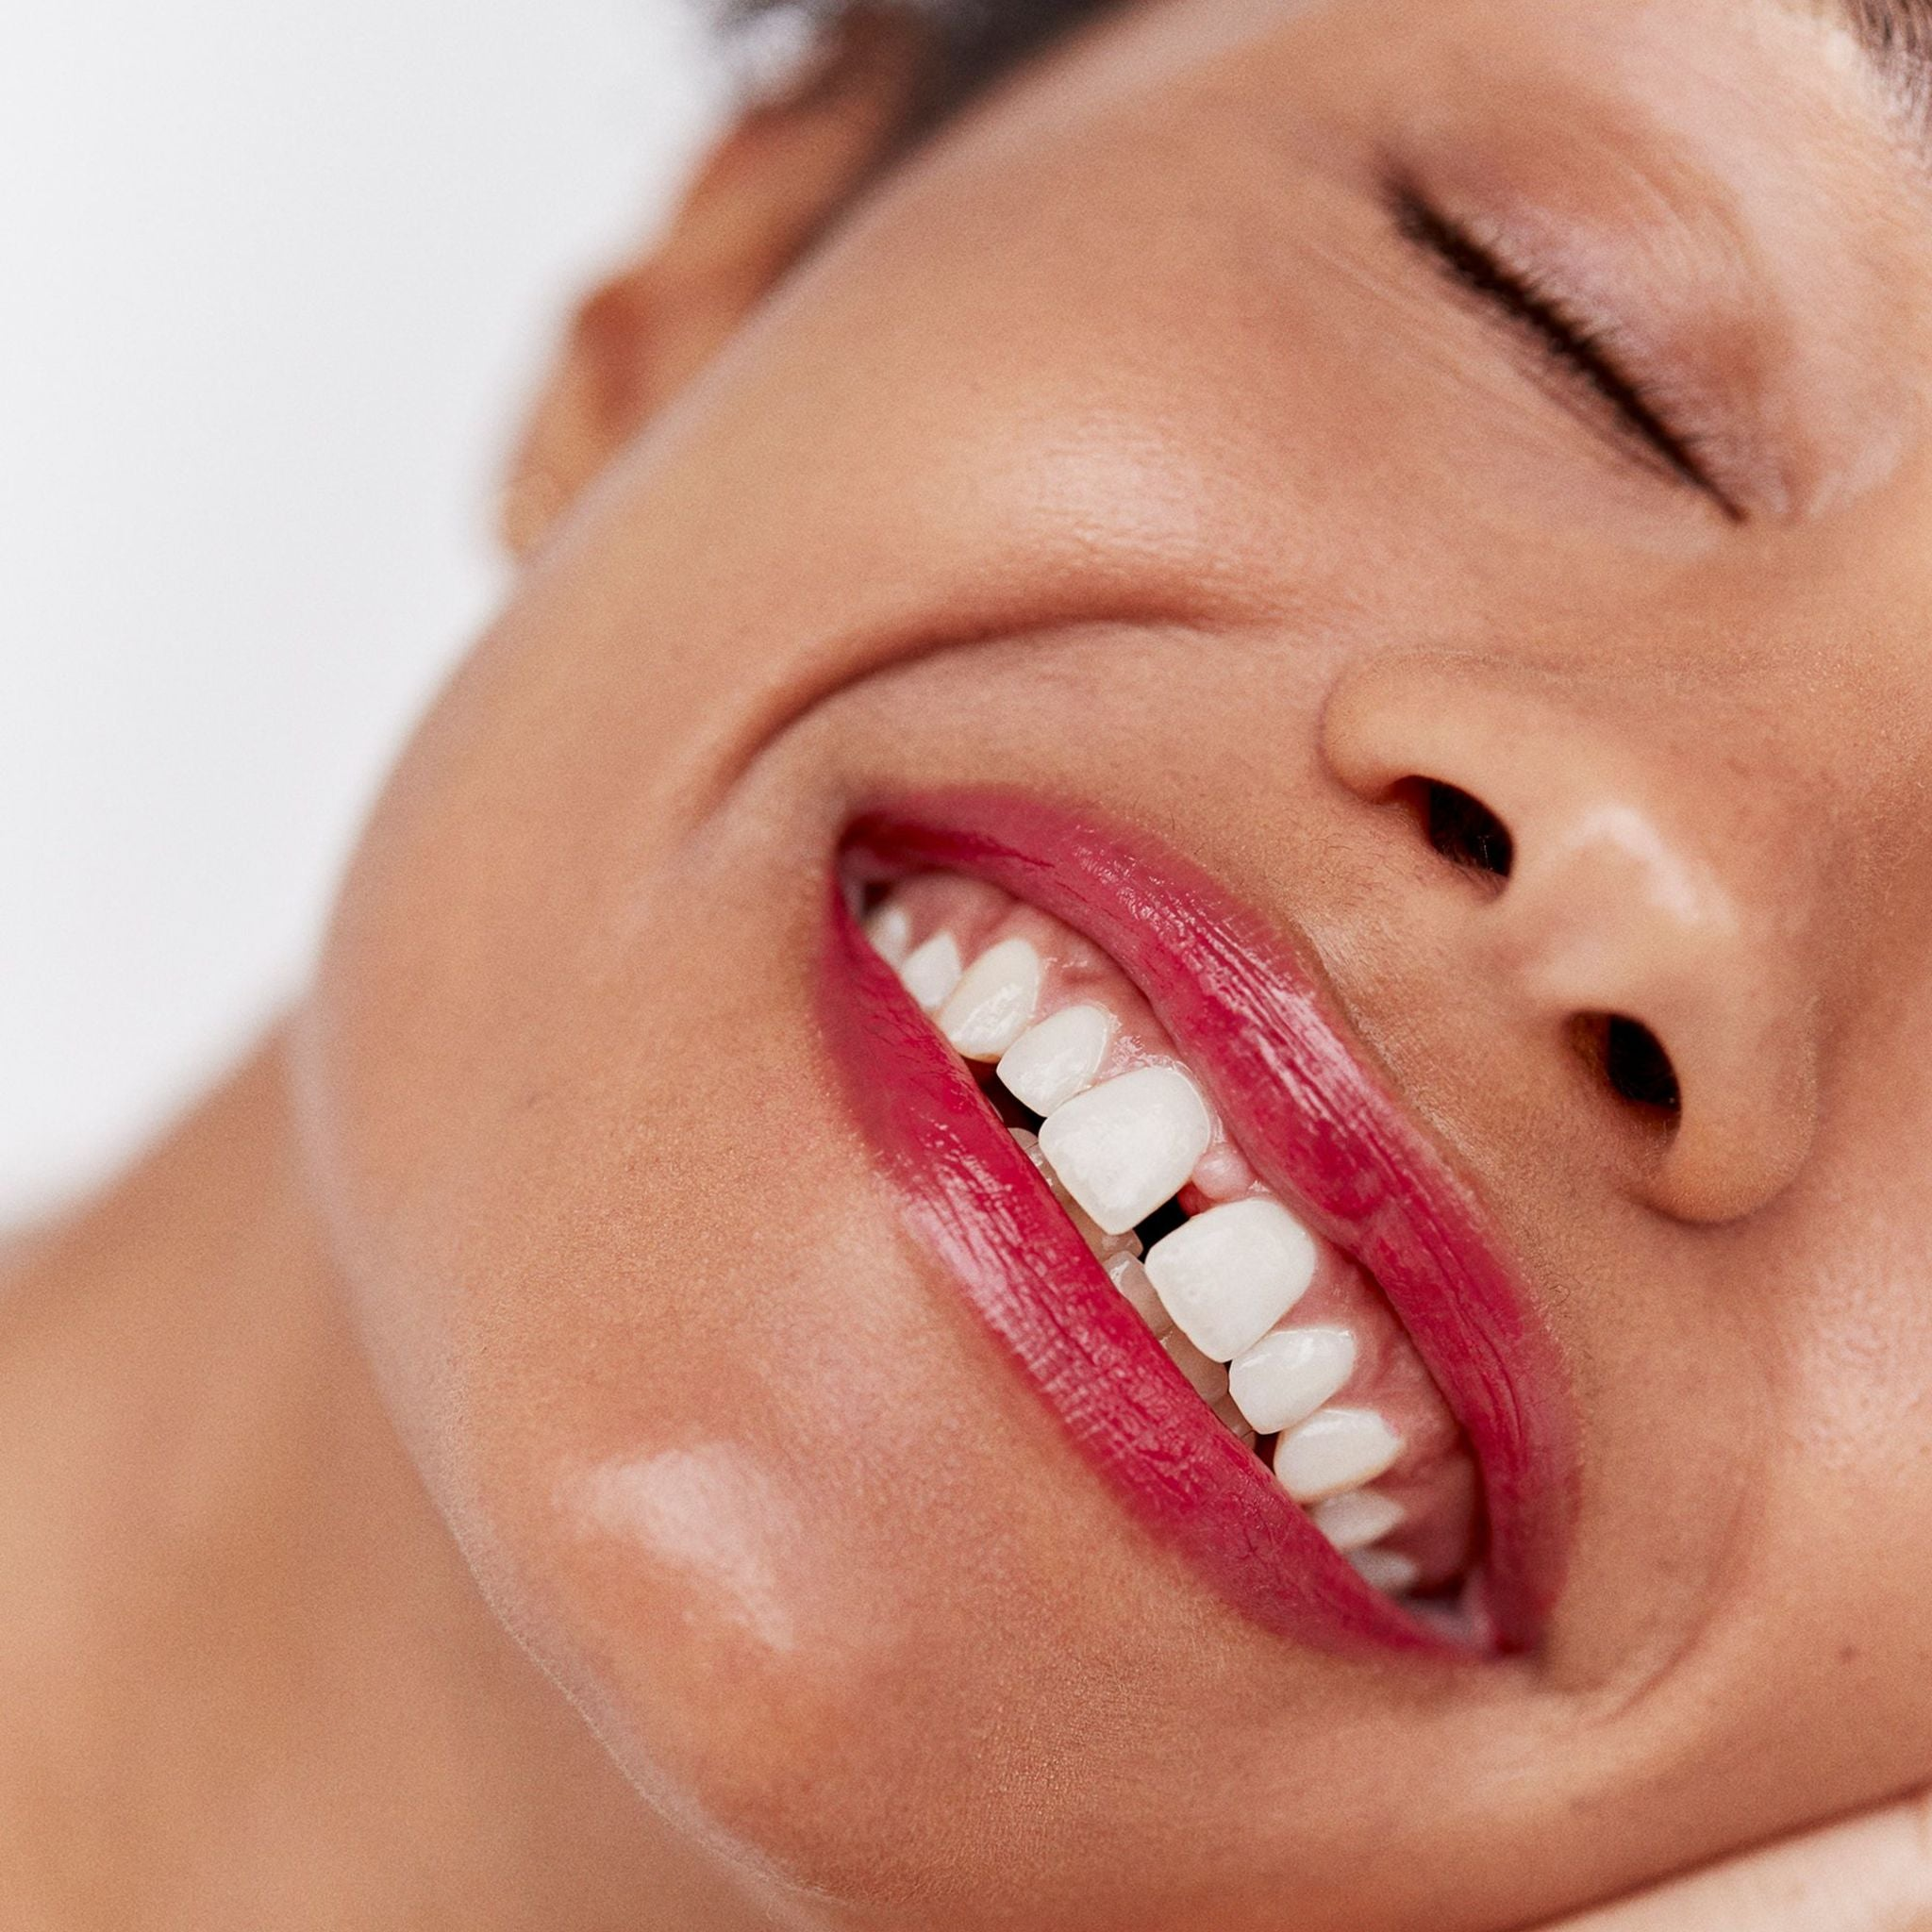 Sugar Rose Tinted Lip Treatment Sunscreen SPF 15